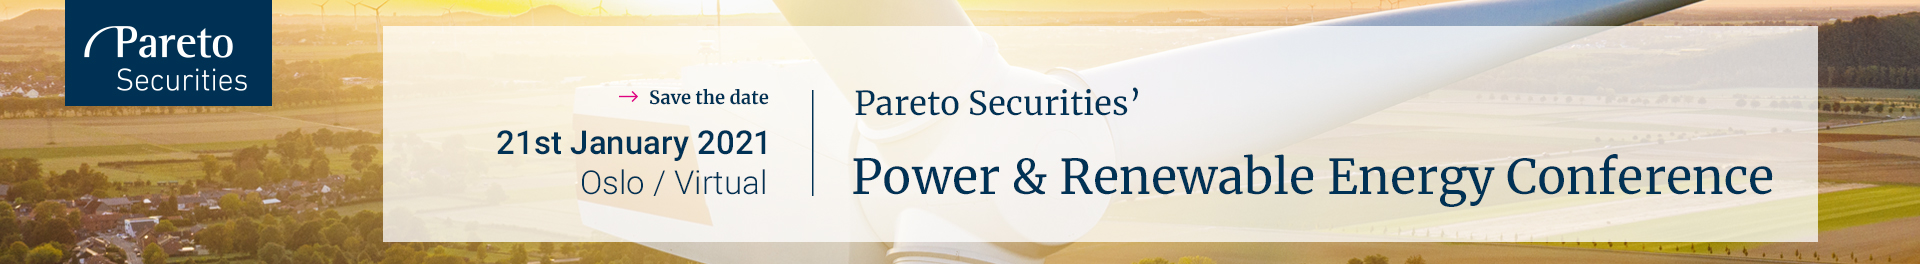 Header image for Pareto Securities' 23rd Annual Power & Renewable Energy Conference